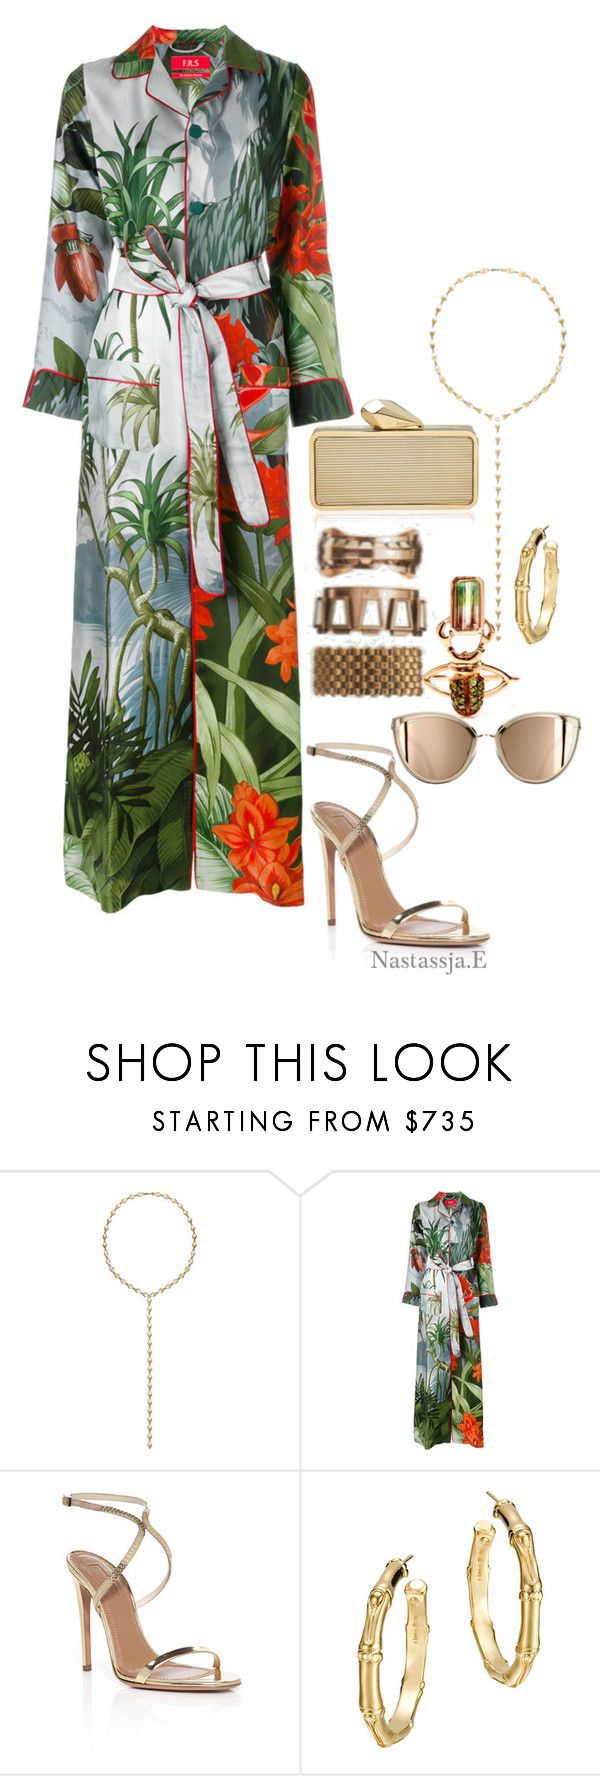 """Sihanoukville Province"" by nastassja-e ❤ liked on Polyvore featuring Melissa Kaye, Daniela Villegas, F.R.S For Restless Sleepers, Aquazzura and John Hardy"